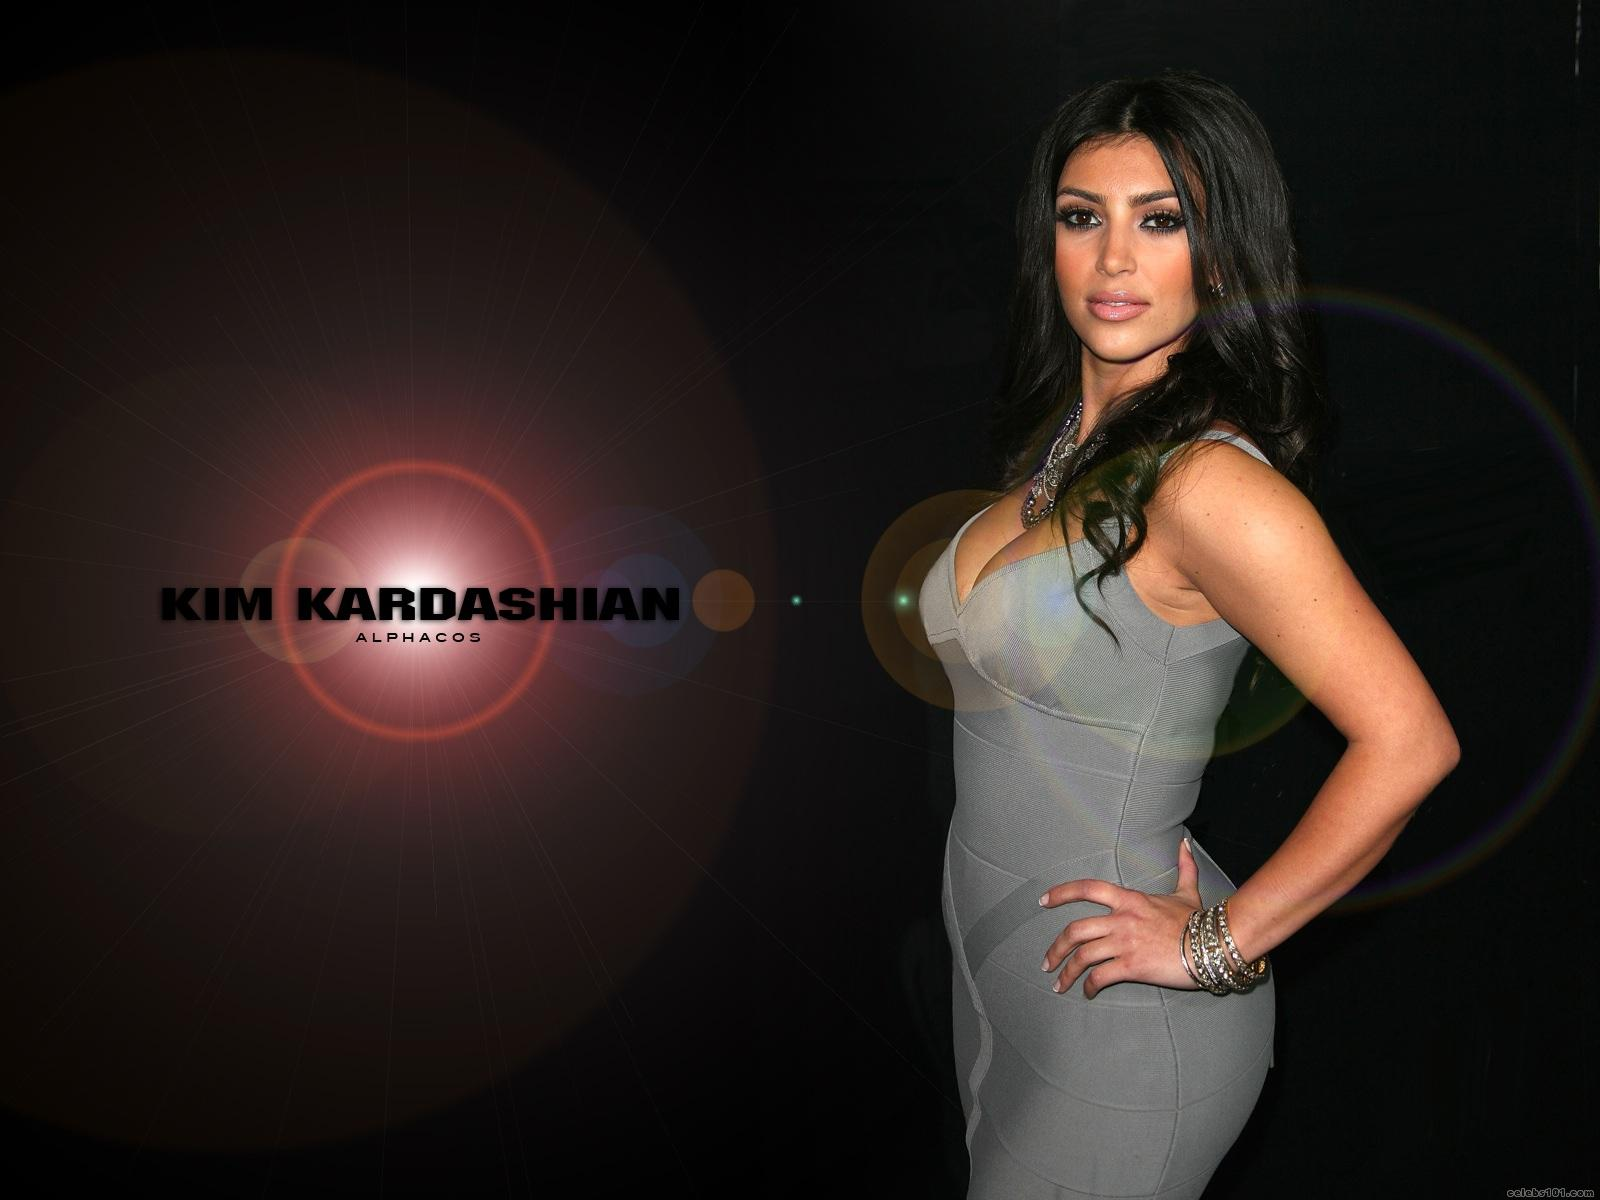 Kim Kardashian Wallpapers Kim Kardashian Wallpapers